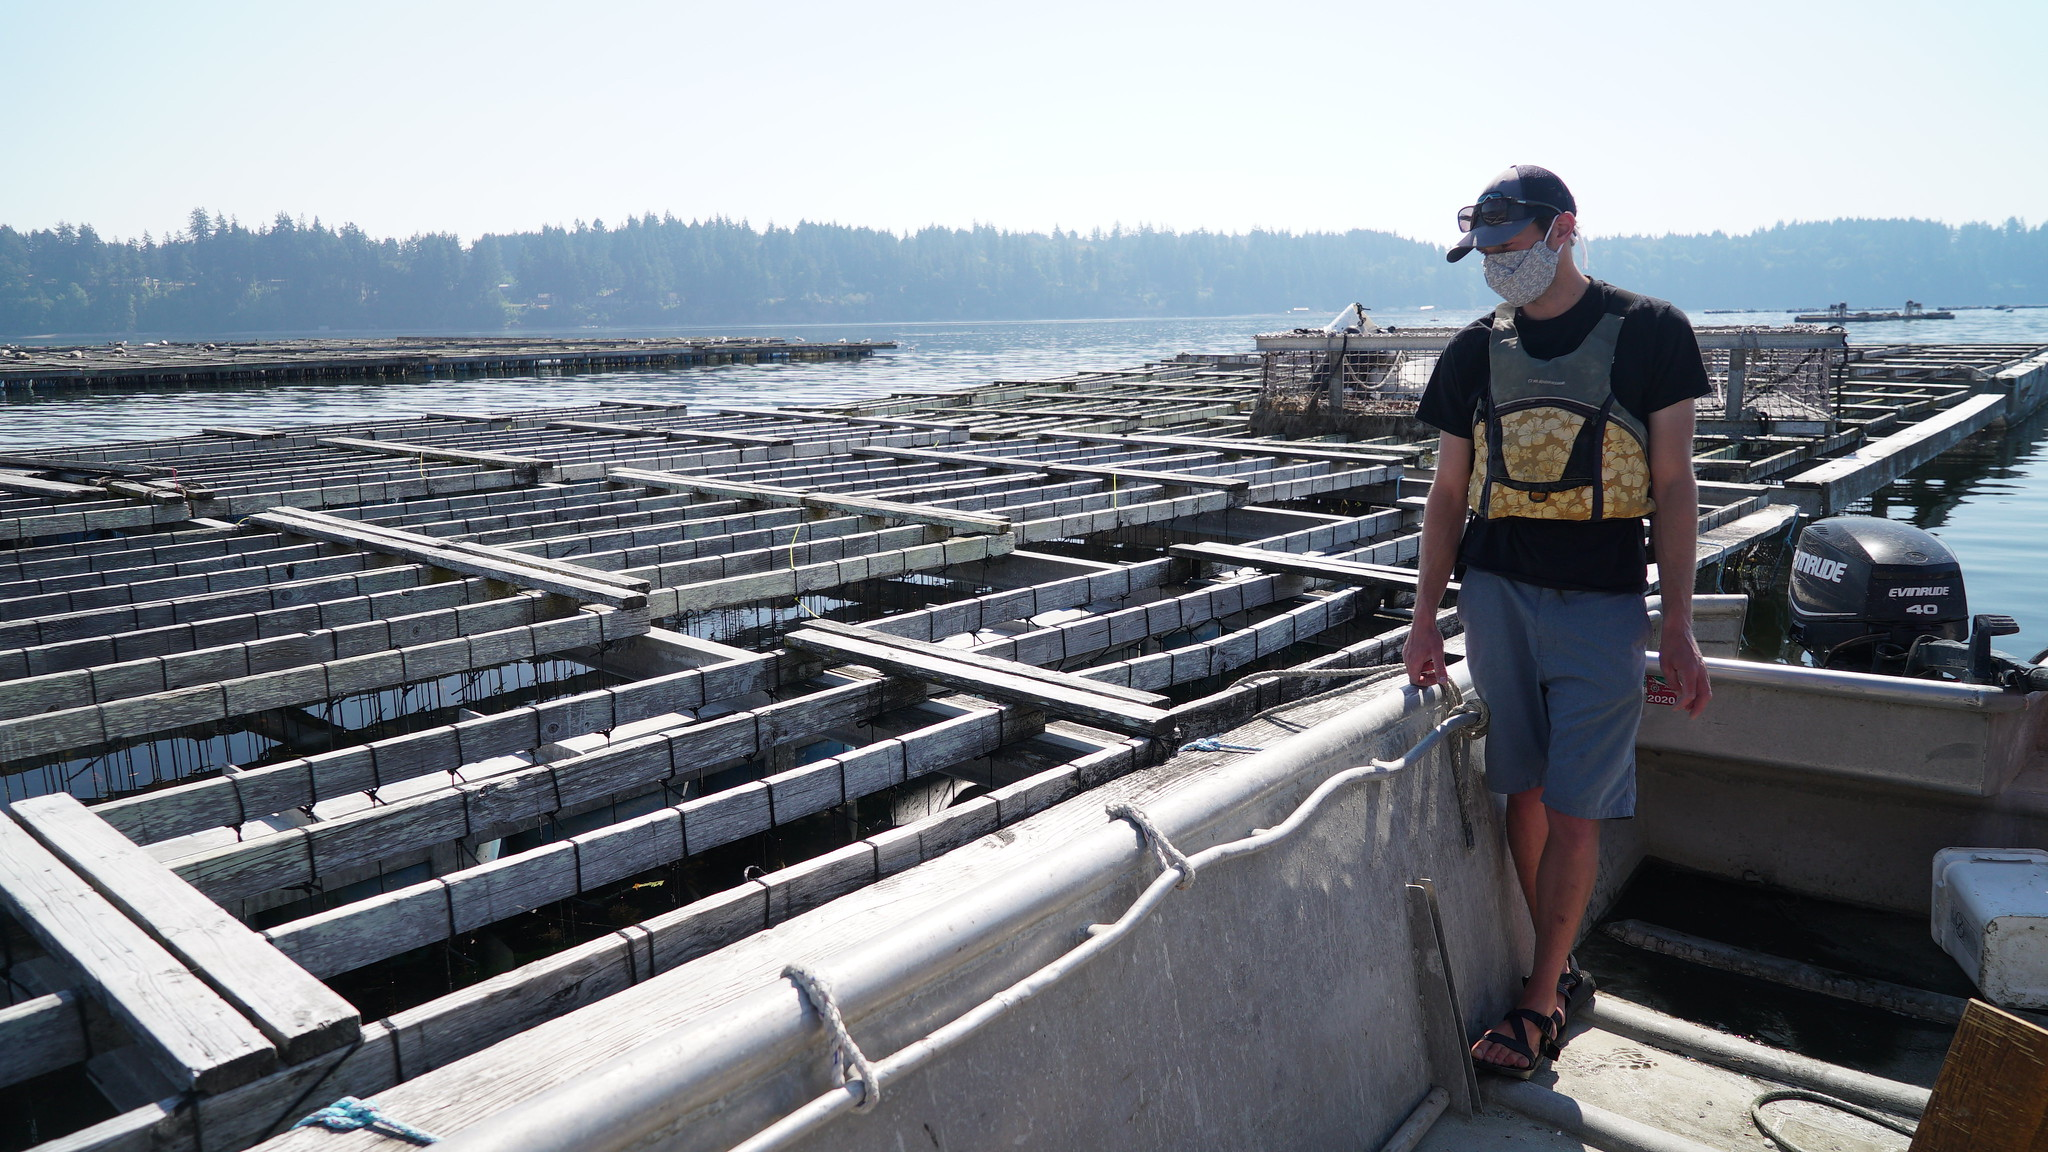 WWU grad student Casey Pruitt prepares to set up his data collection station at a floating mussel aquaculture pen on Totten Inlet northwest of Olympia.